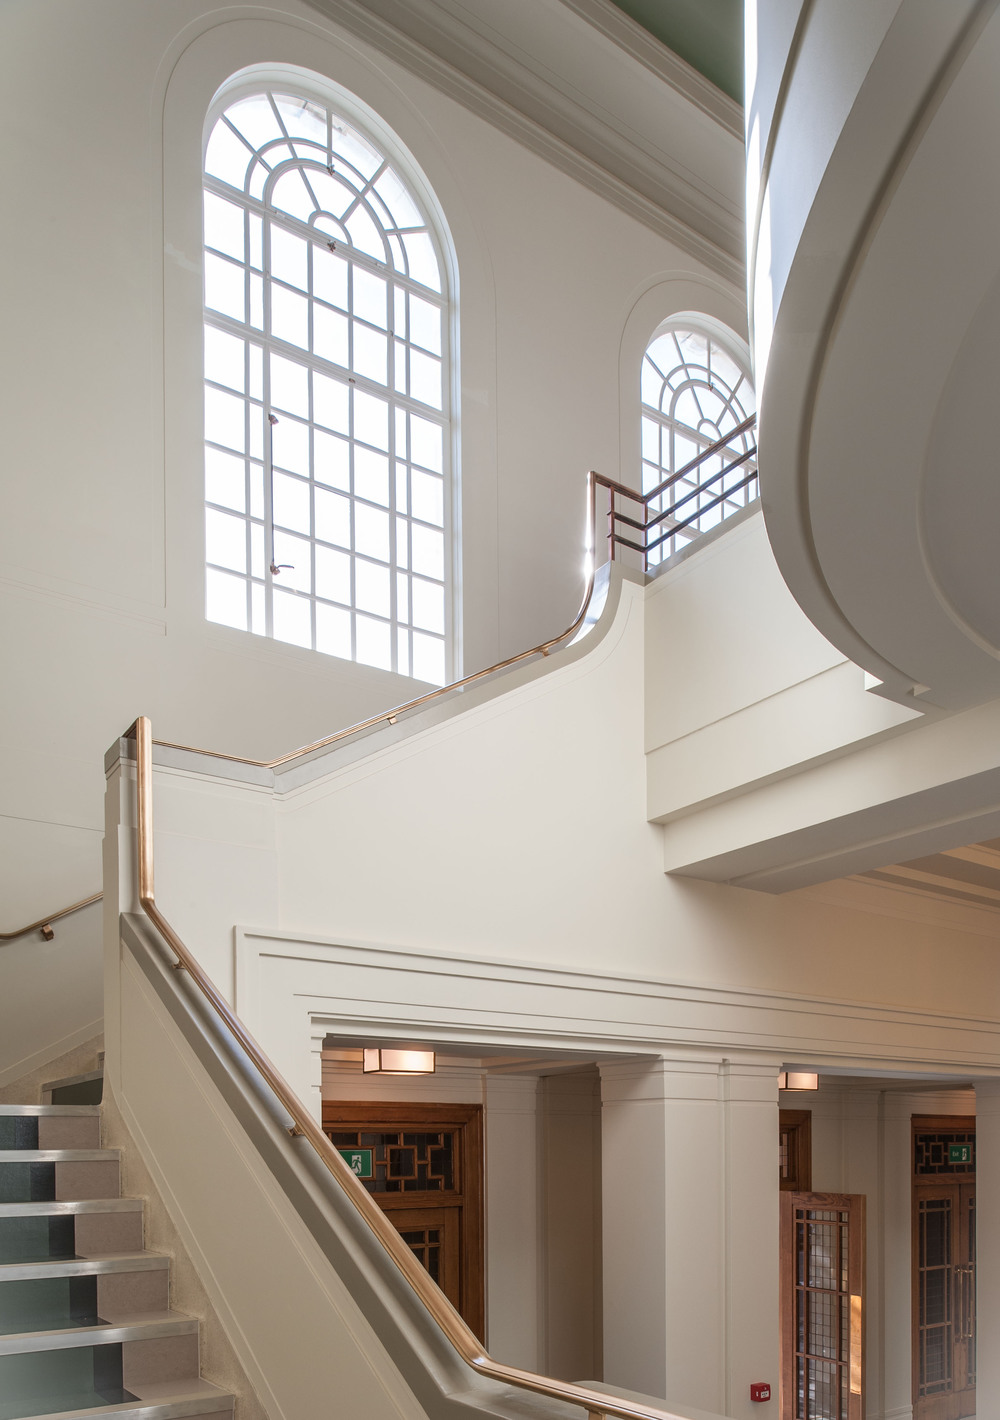 Hackney Assembly Rooms staircase